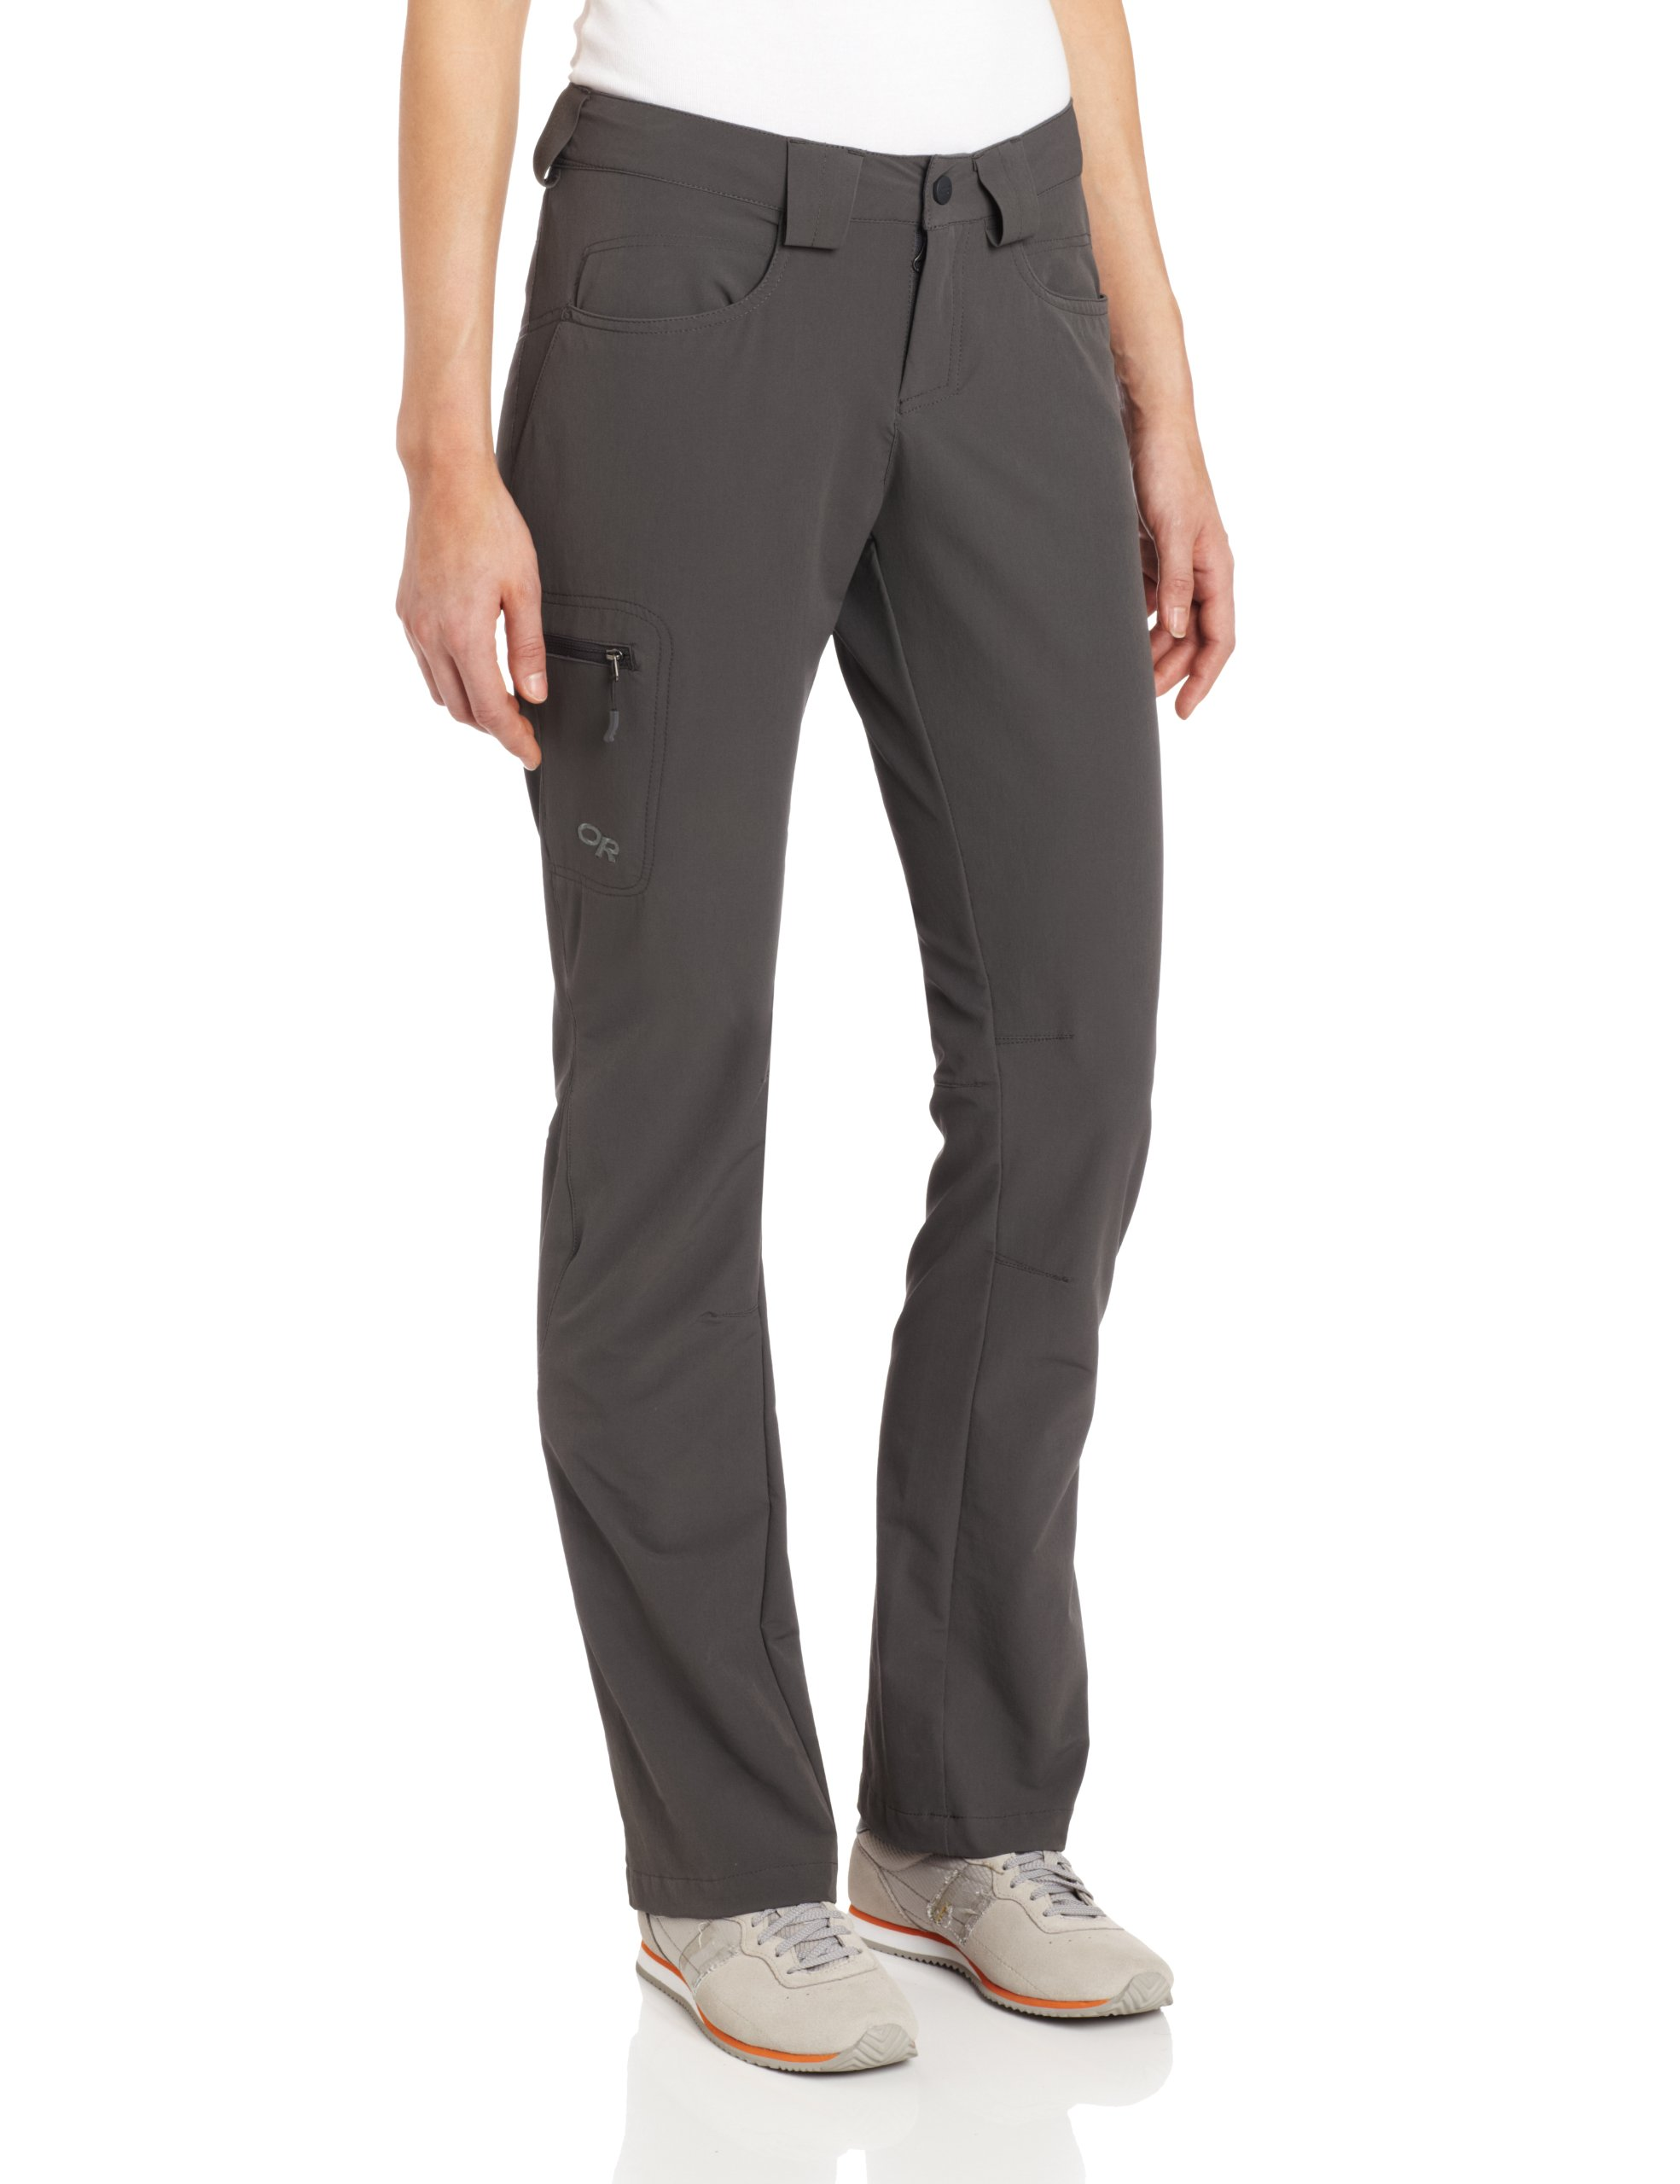 Outdoor Research Women's Voodoo Pant, Charcoal, 2 by Outdoor Research